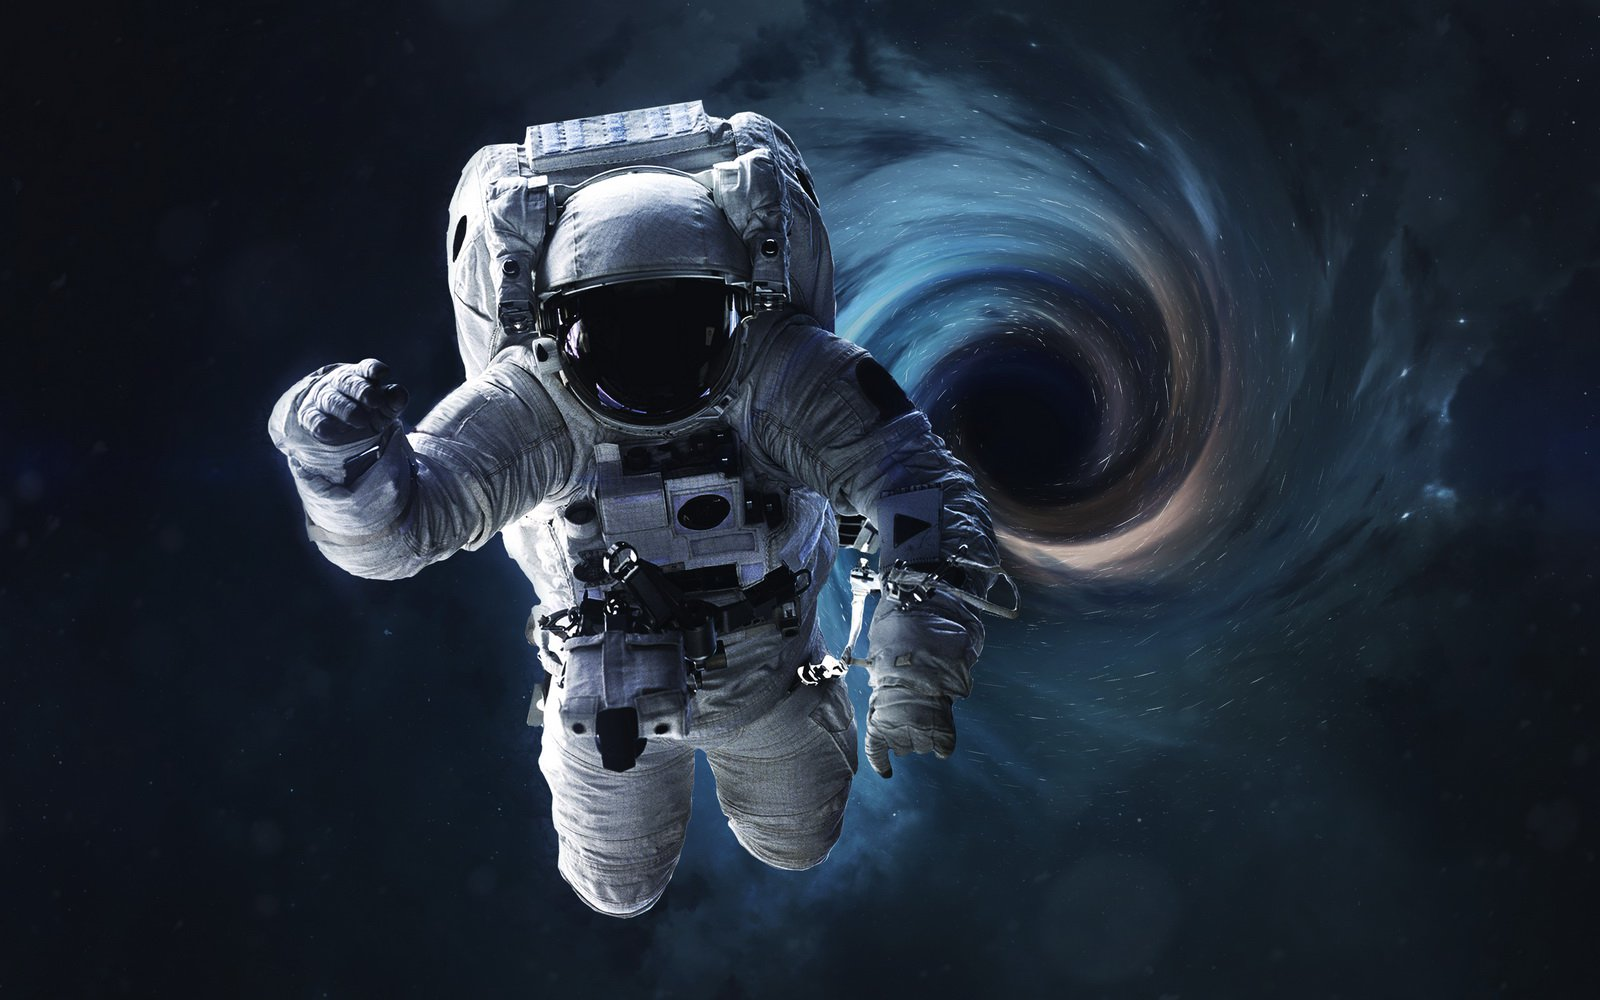 Scientists: Use black holes for space travel, but only with caution